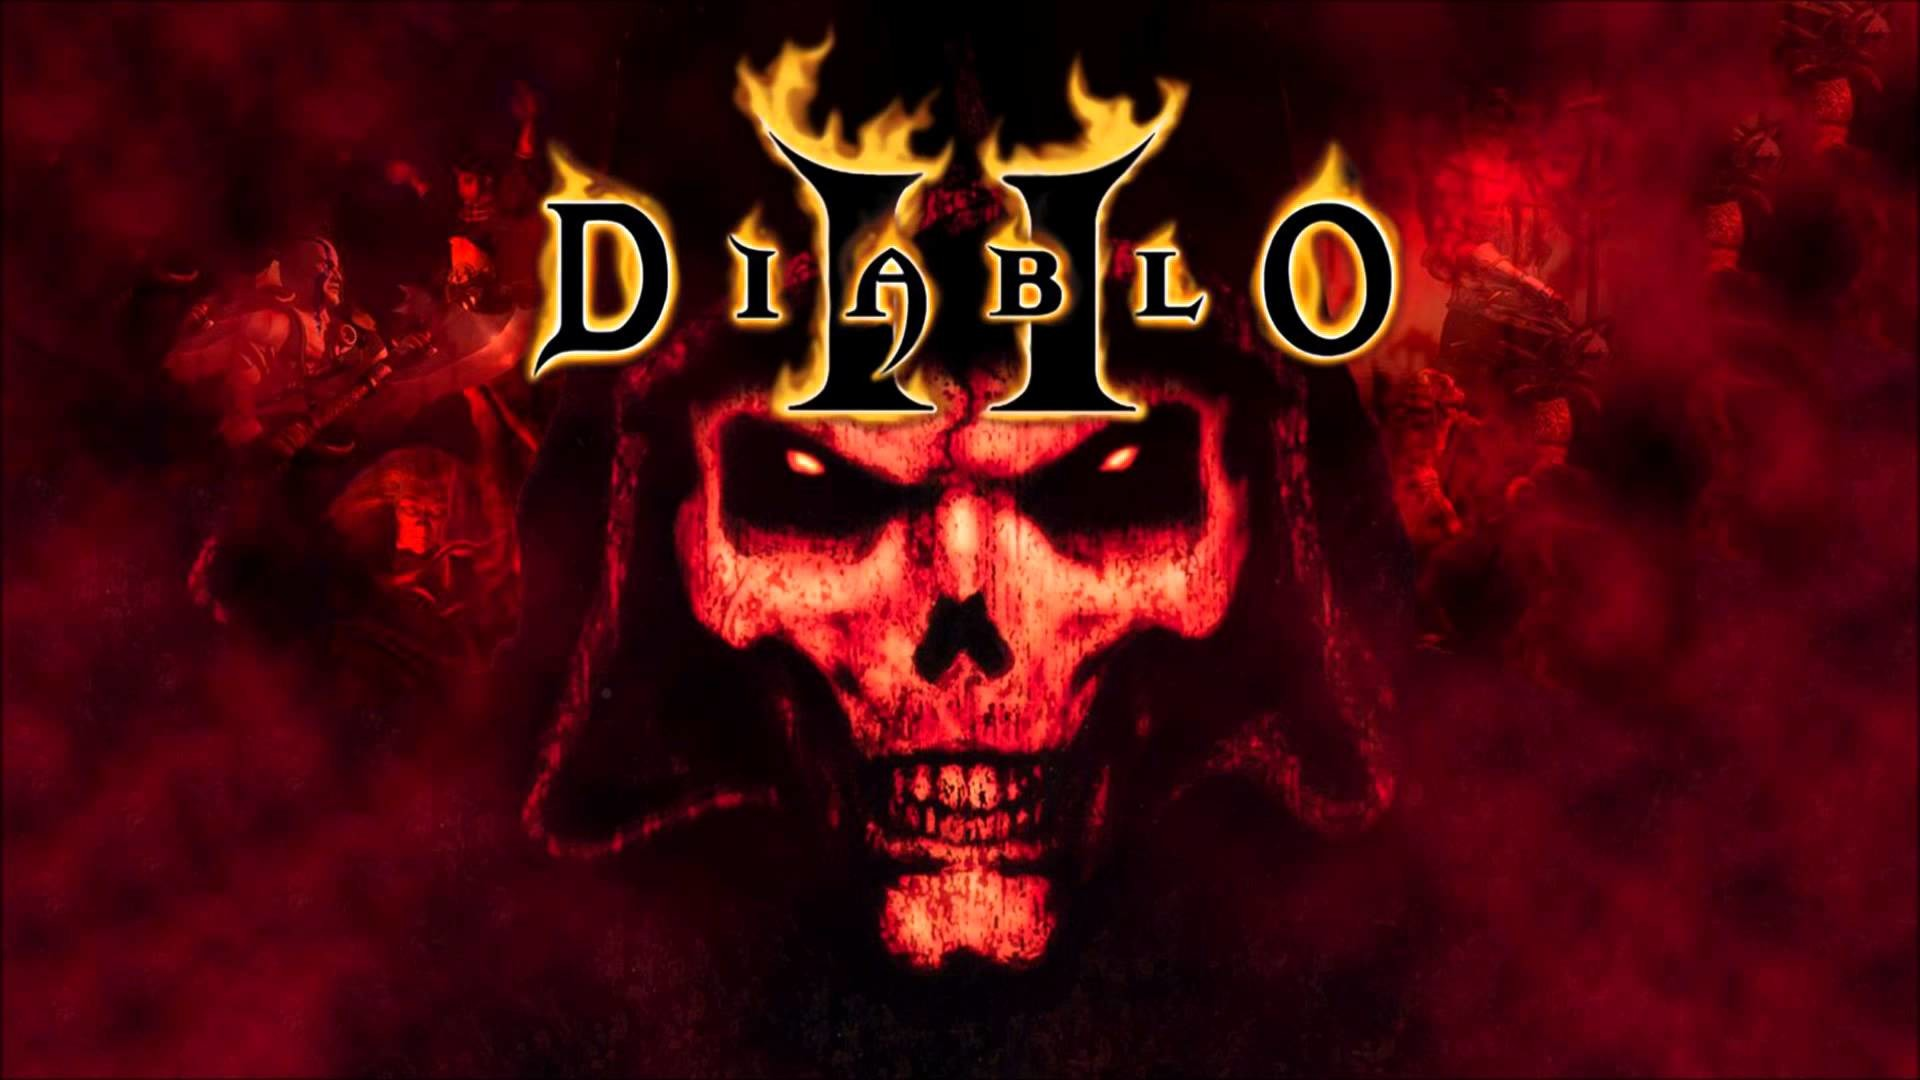 Res: 1920x1080, Diablo II HD Wallpapers 15 - 1920 X 1080